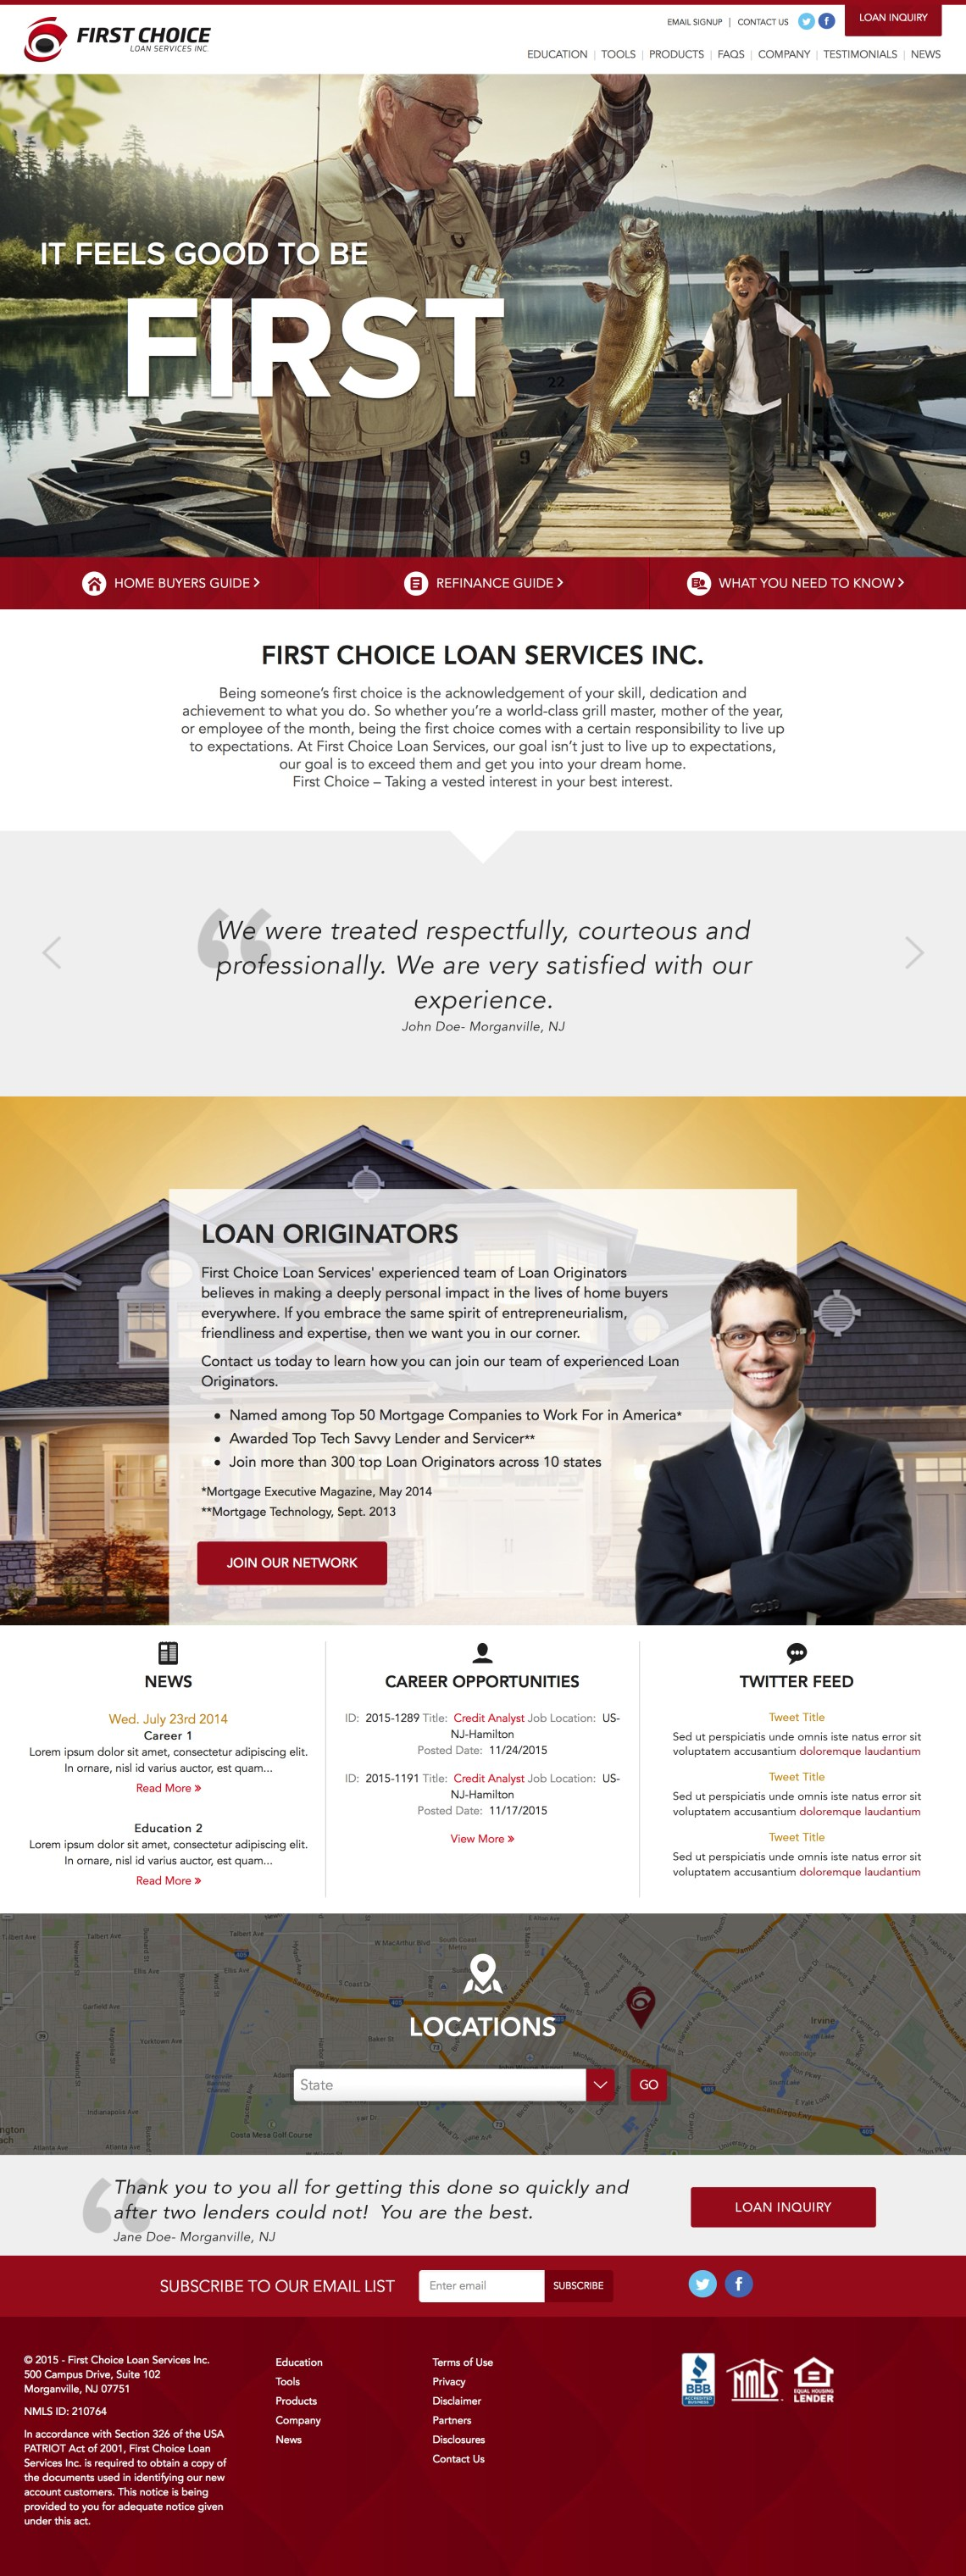 first choice lender website - development